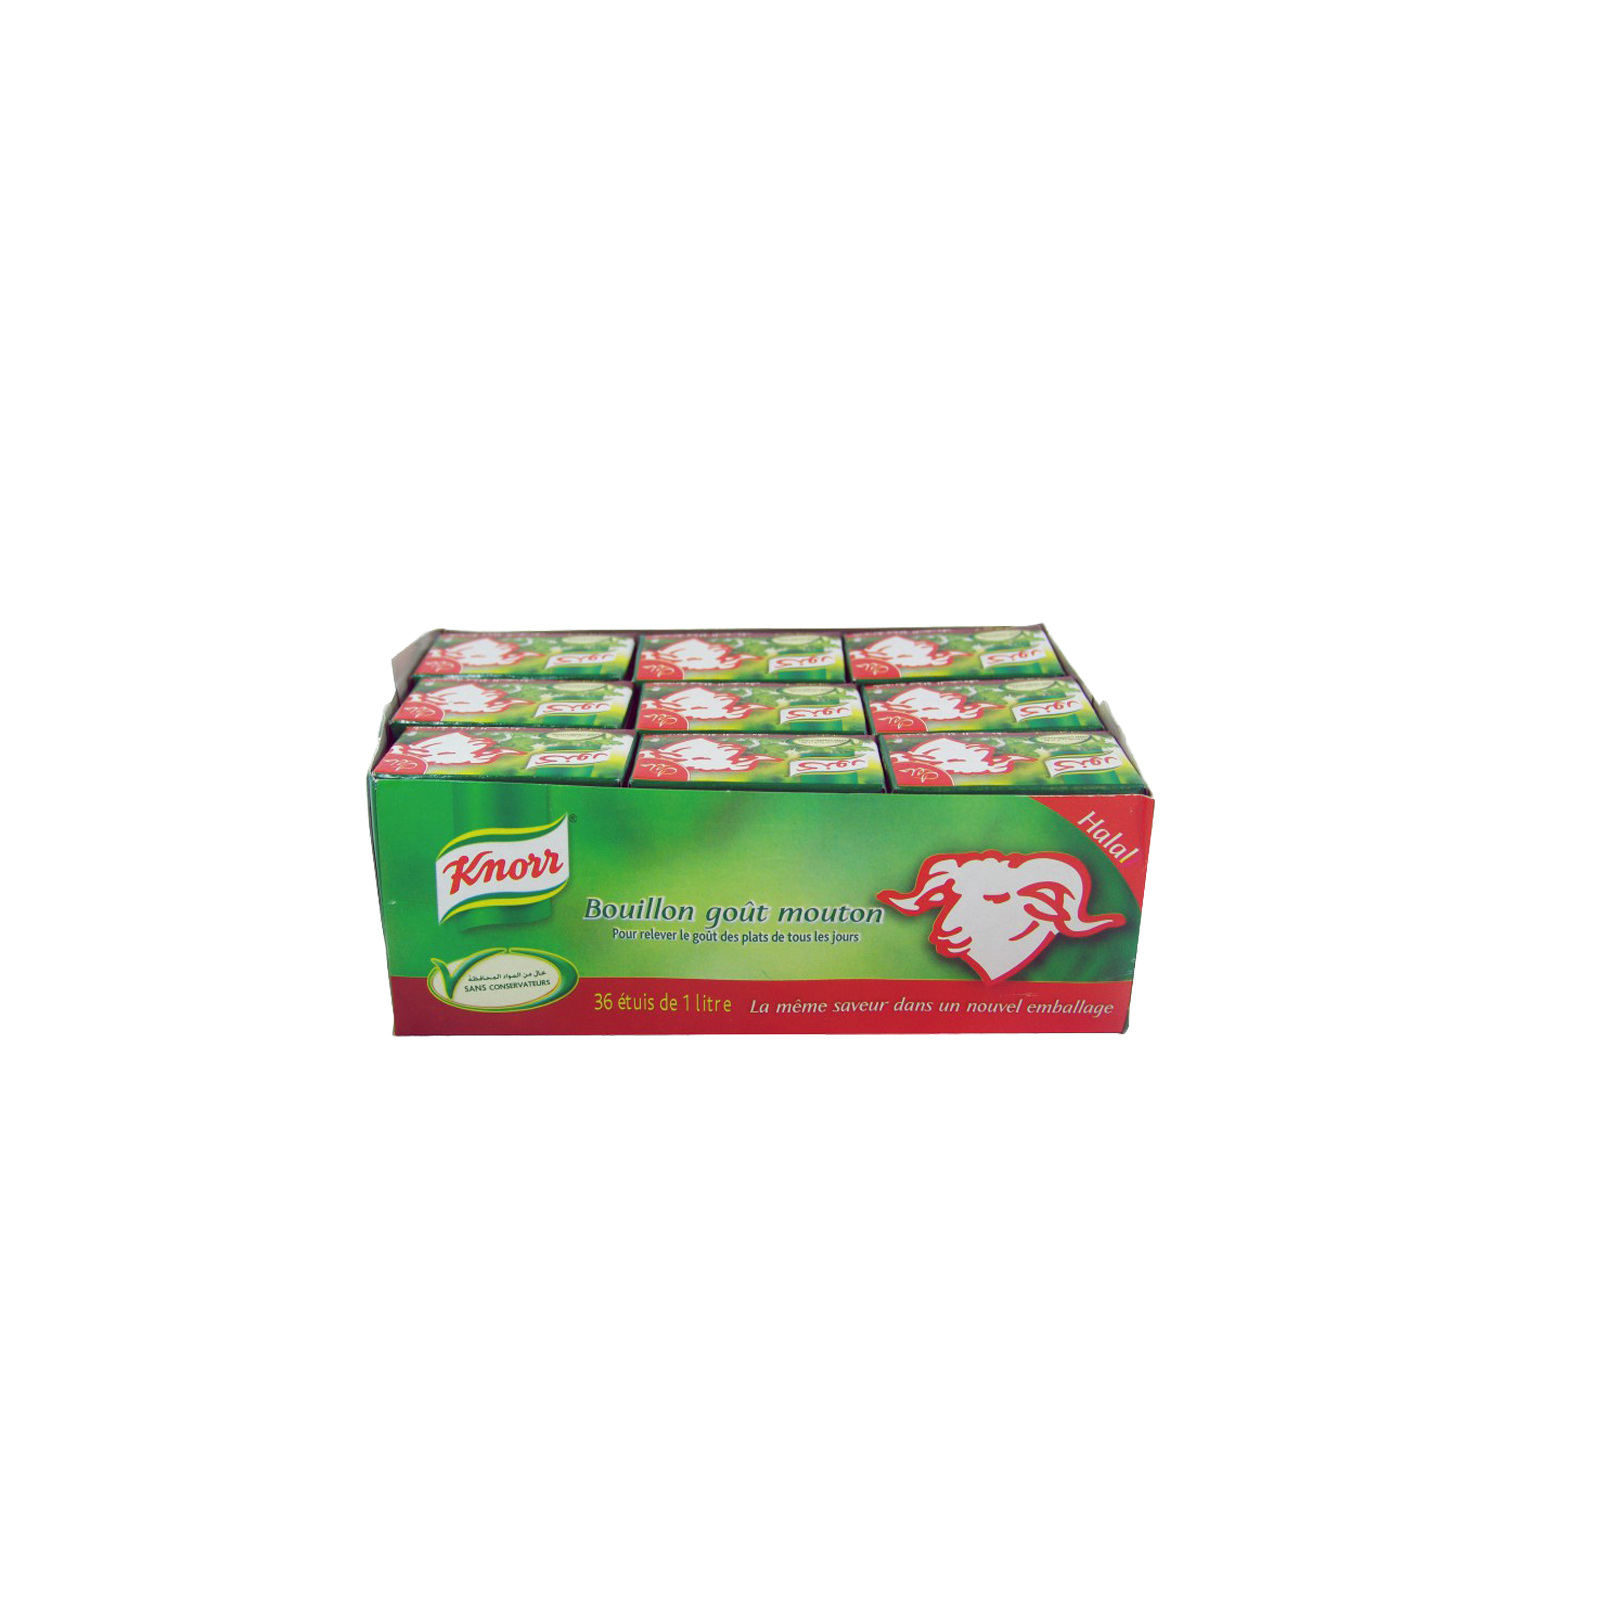 Knorr Lamb 2 Piece